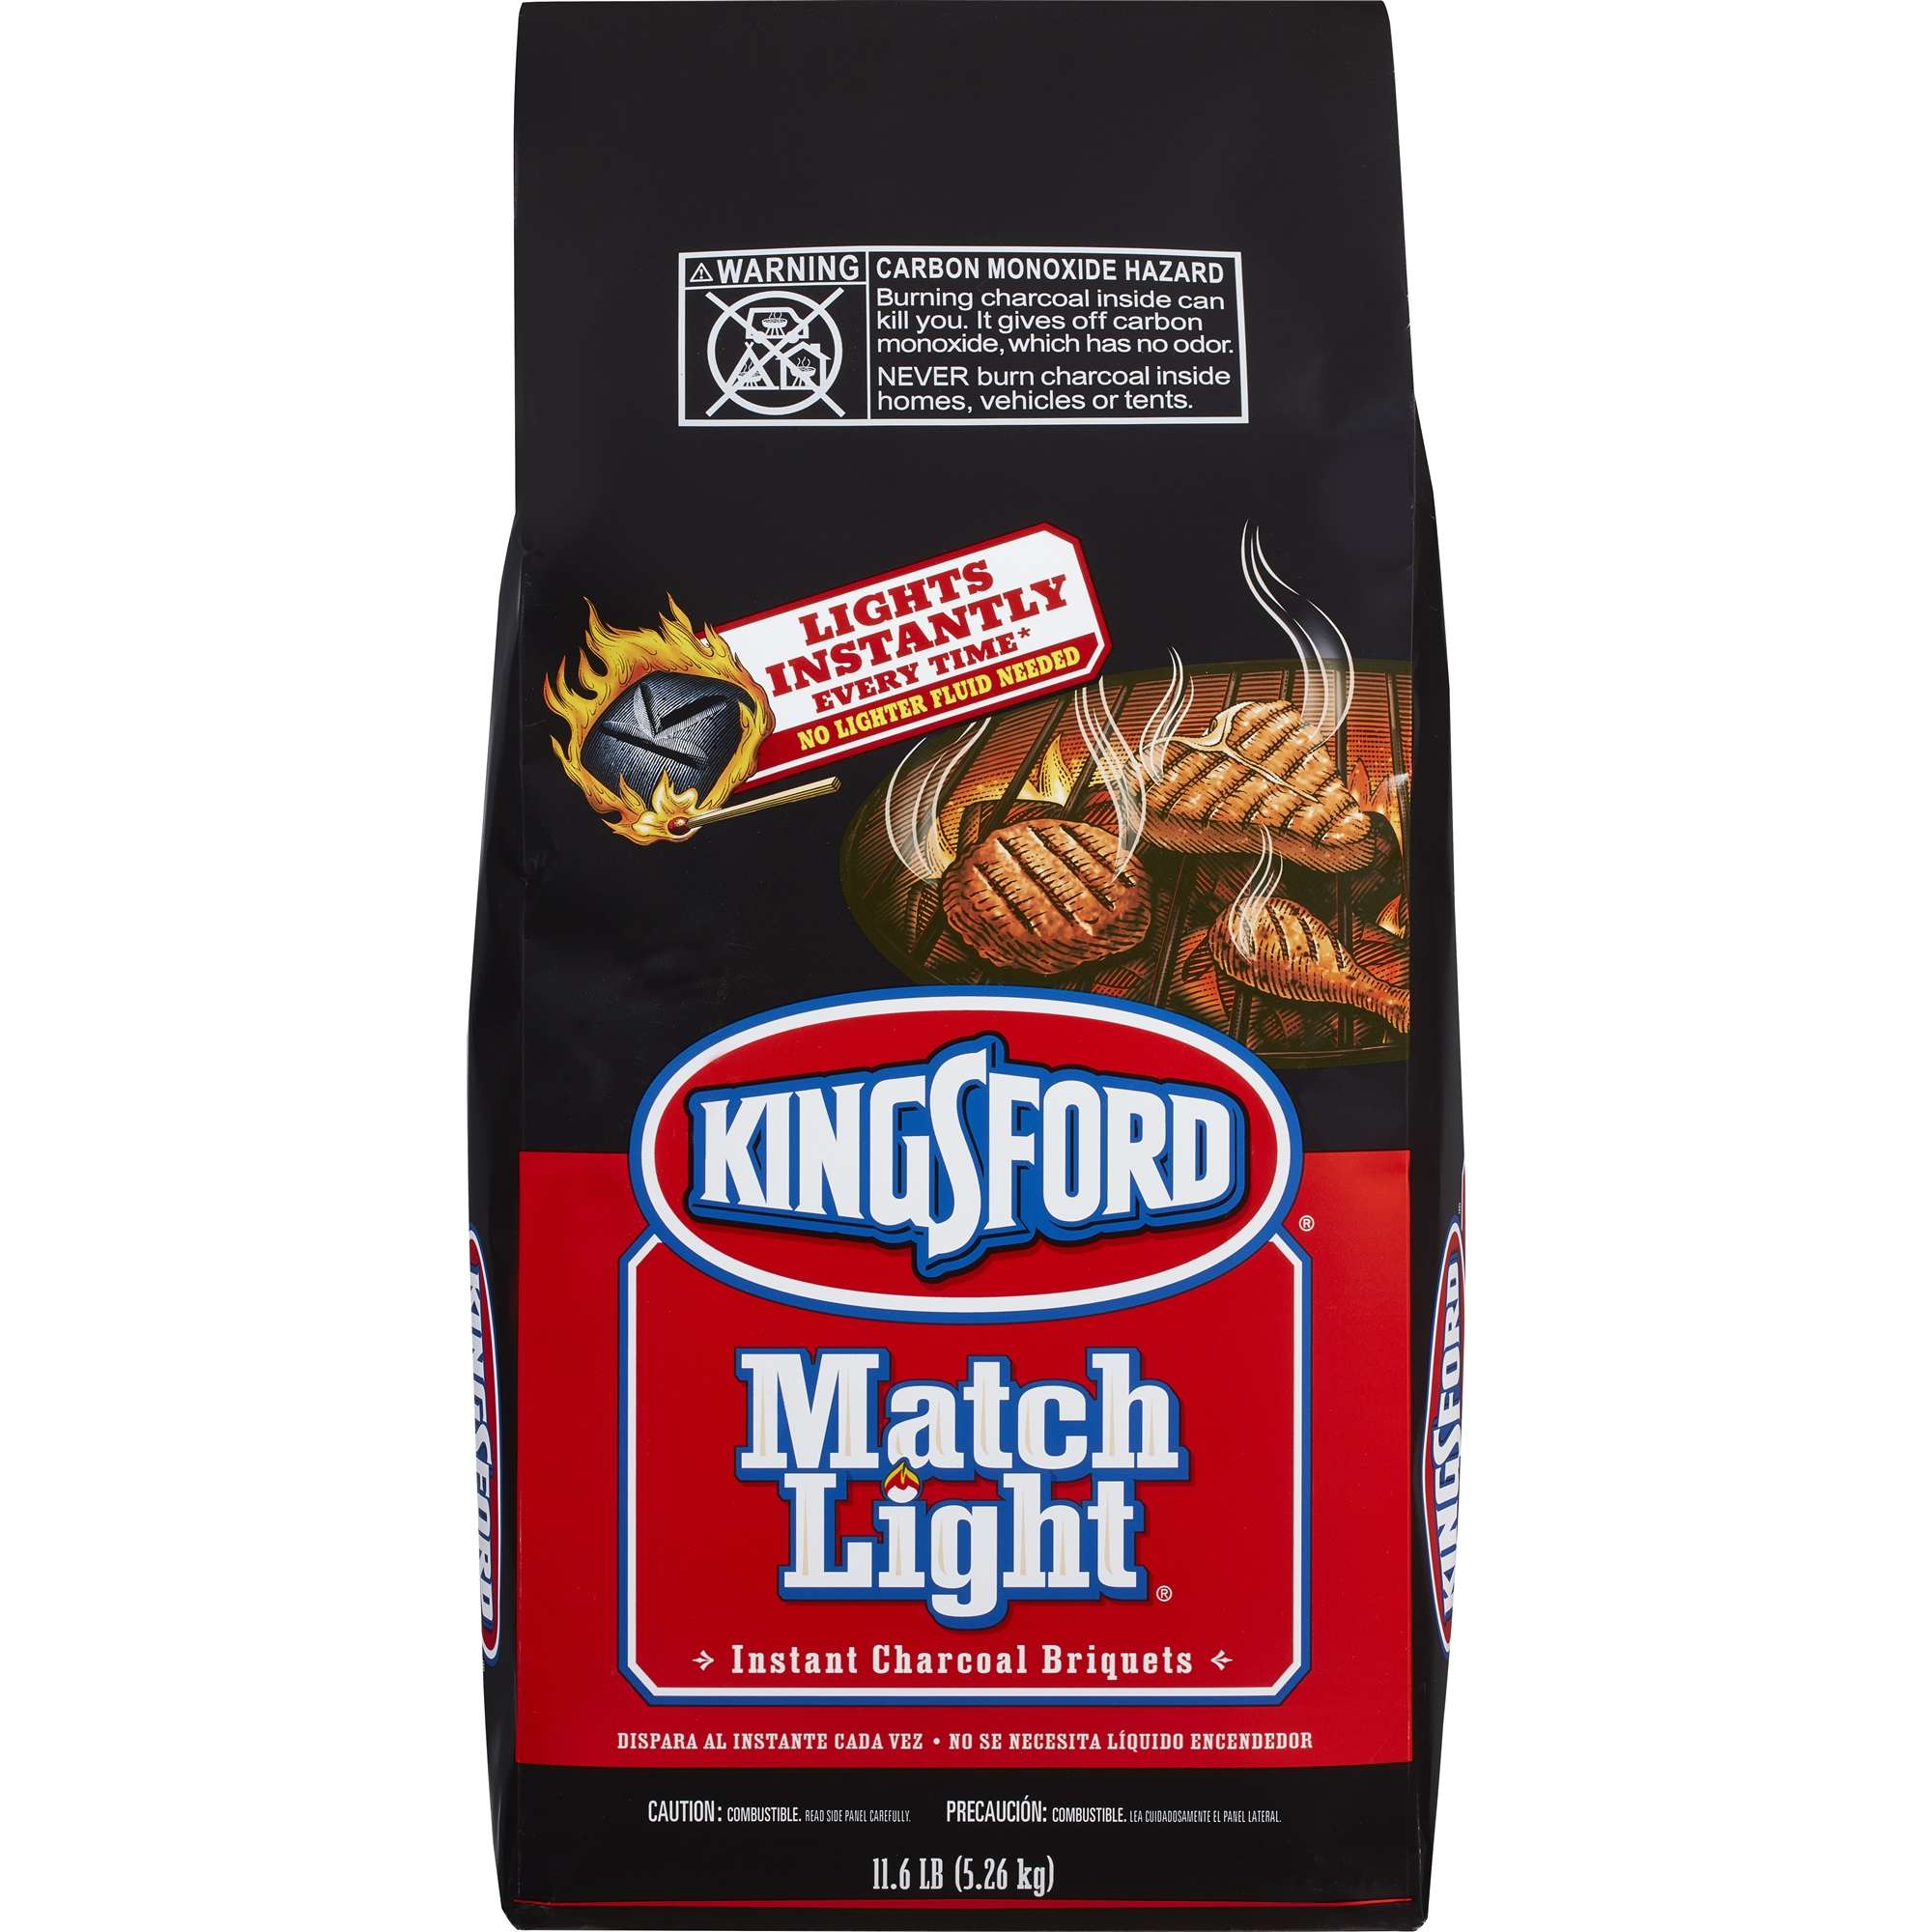 Kingsford Match Light Charcoal Briquettes, 11.6 lbs